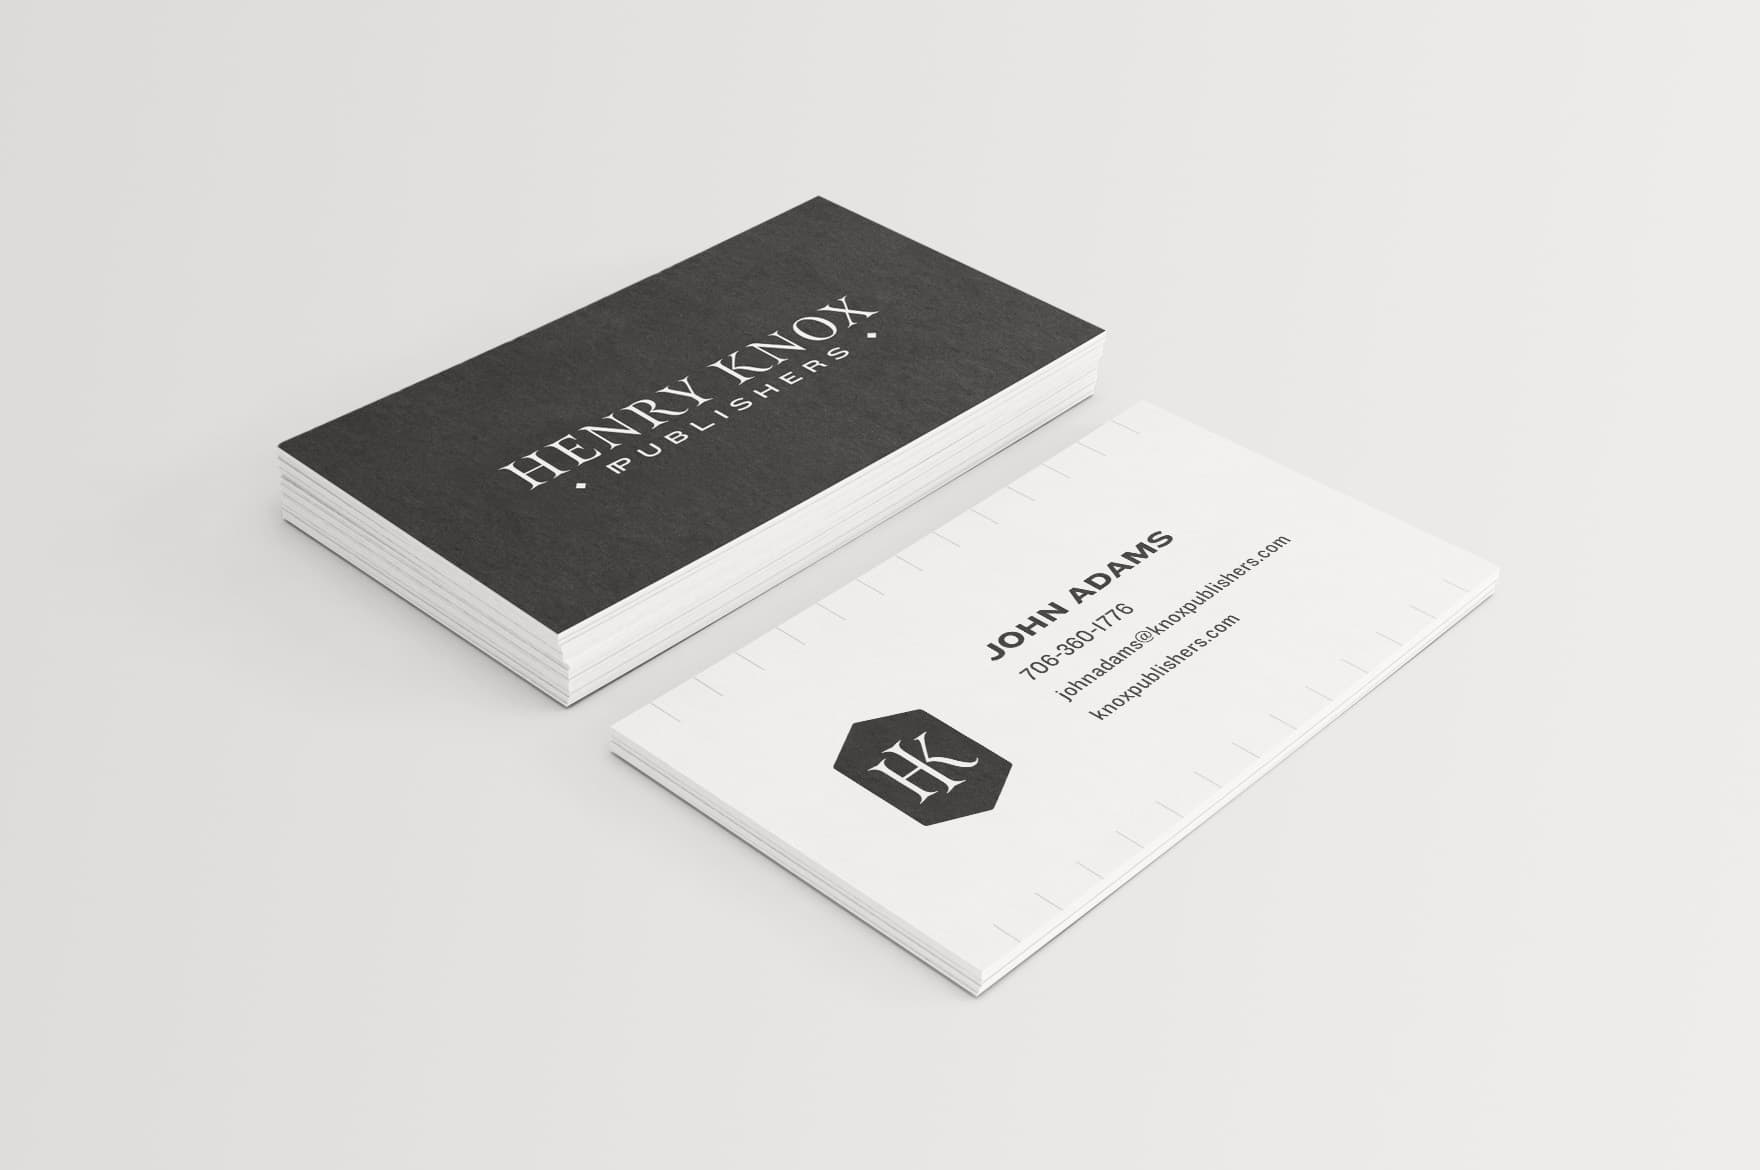 hk business card